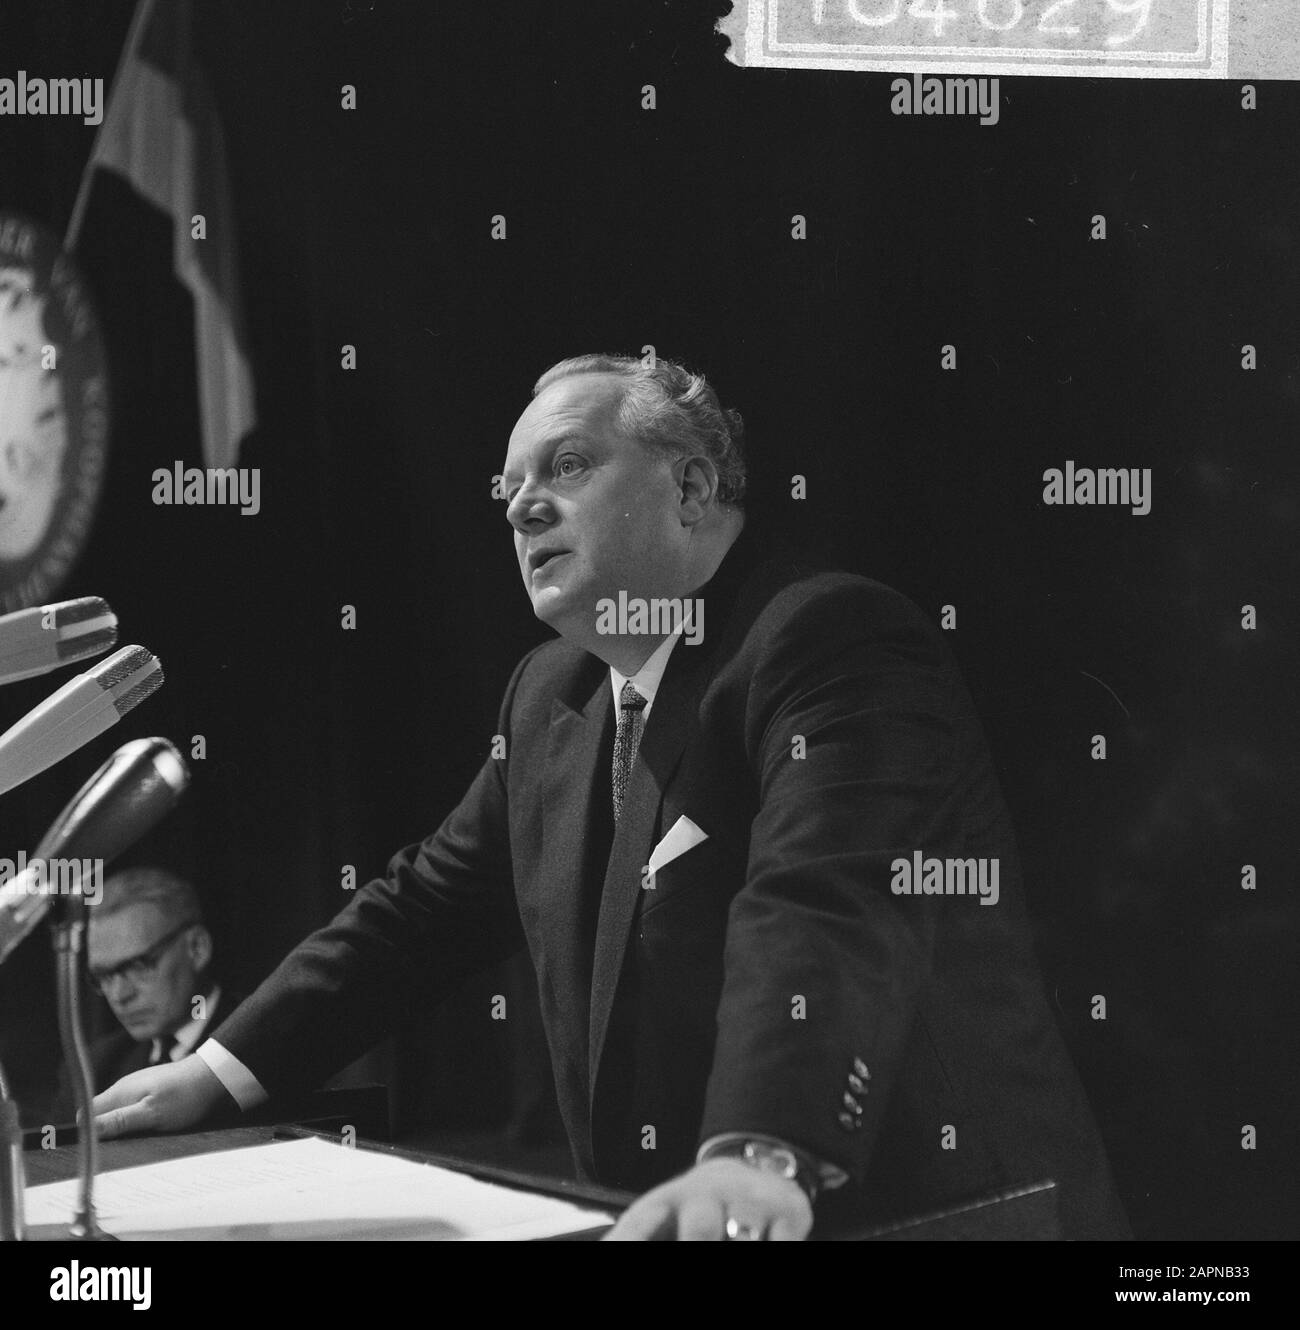 Extraordinary general meeting of Dutch-German Chamber of Commerce on the occasion of the sixtieth anniversary  German Minister of Economy and Technology K. Schmückler during a speech Date: 18 November 1965 Keywords: international relations, anniversaries, speeches, meetings Personal name: Schmückler, Kurt Institution name: Chamber of Commerce Stock Photo